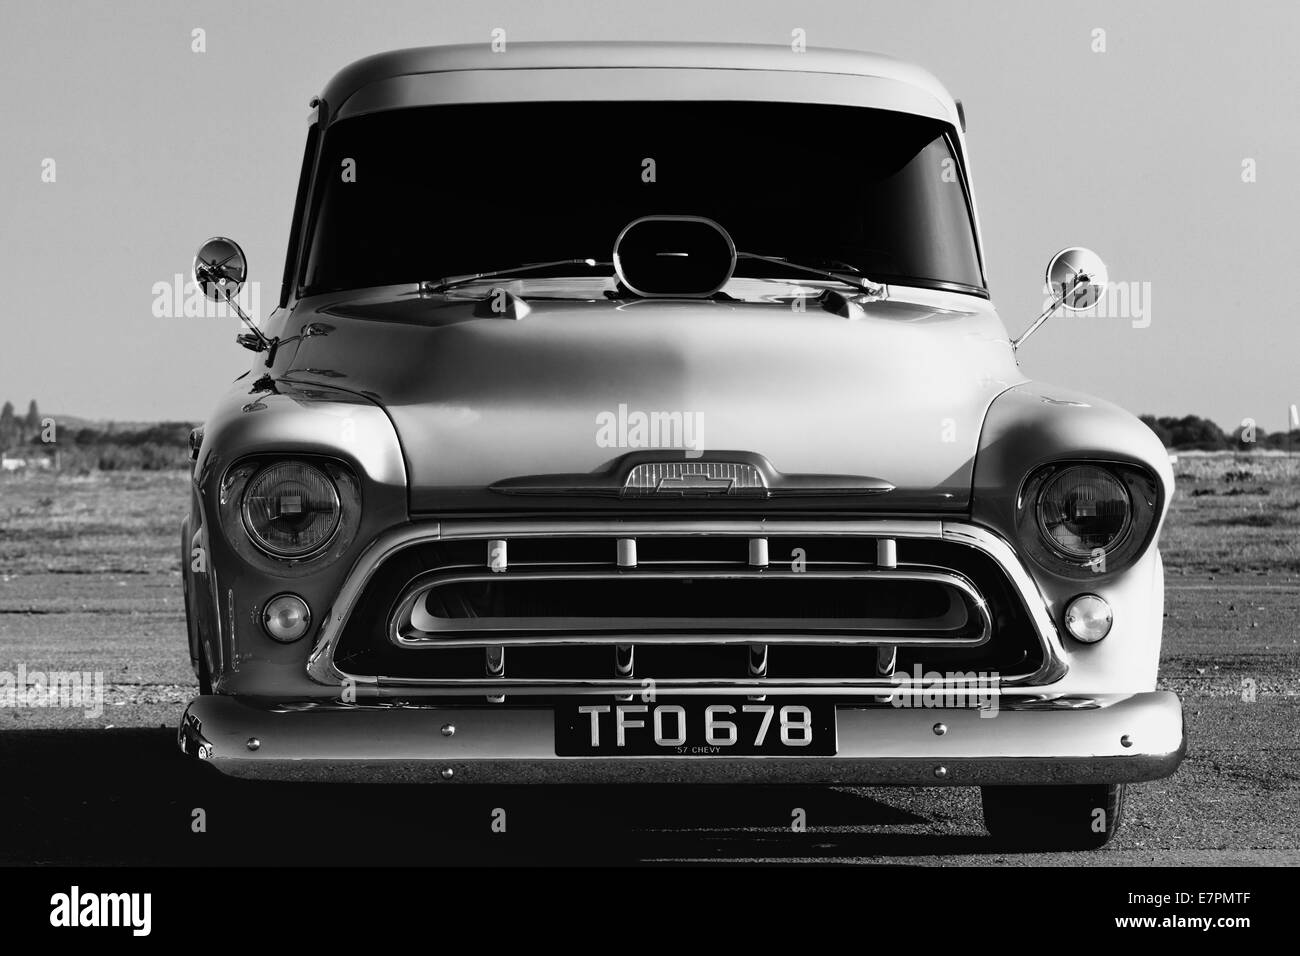 1957 Chevrolet Pick Up Truck Chevy Classic American Car Black And White